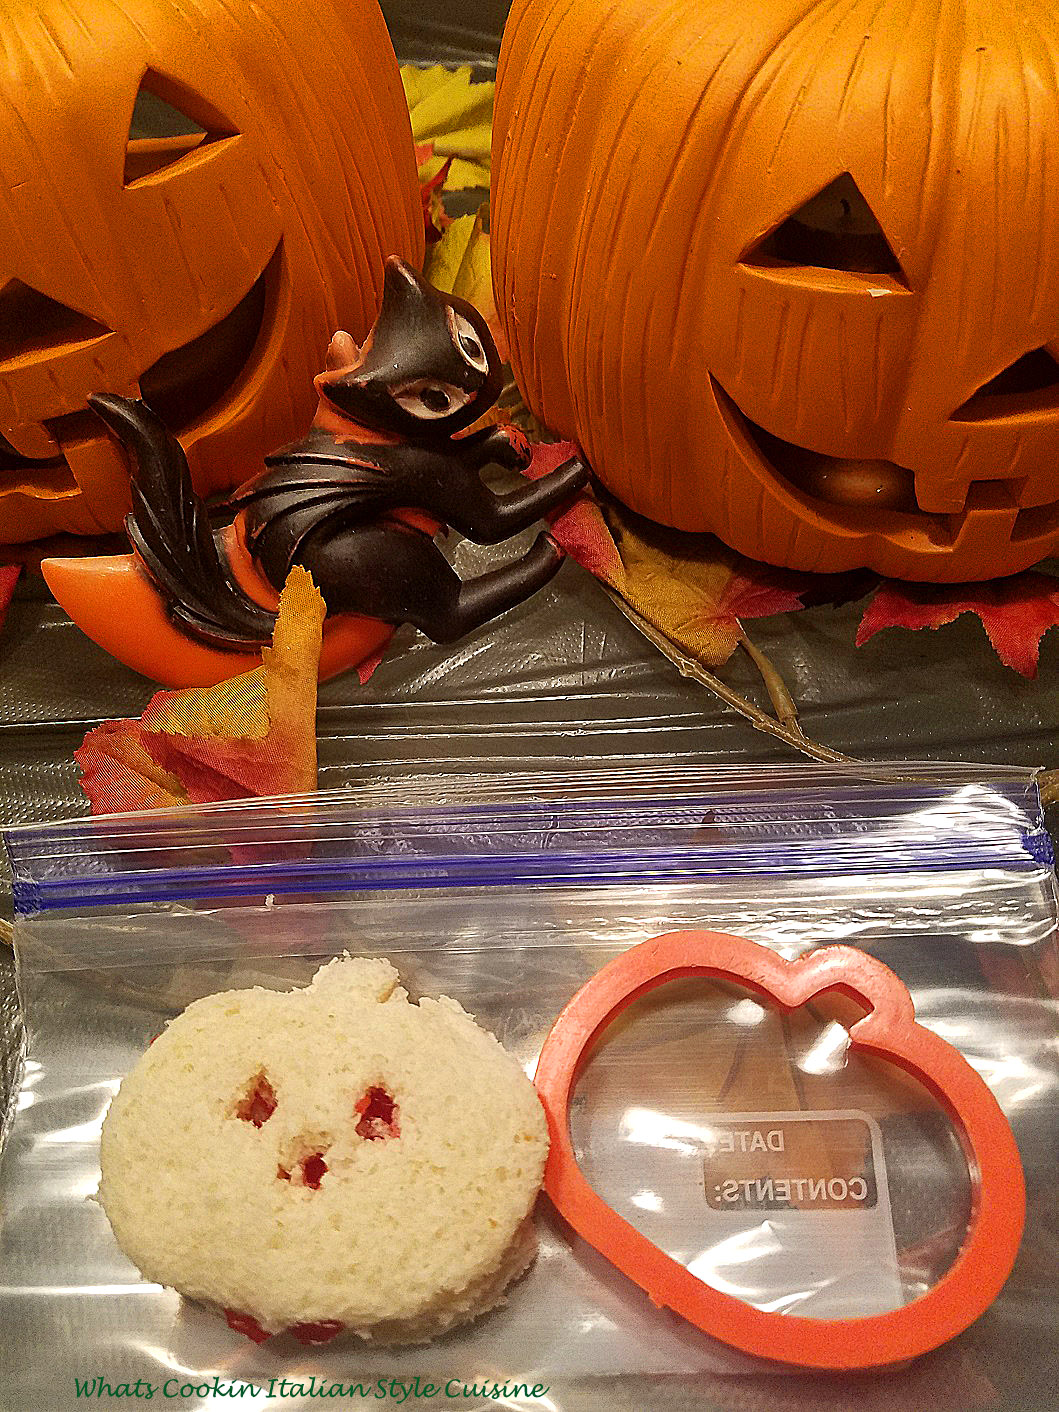 A little sandwich made with cookie cutters for a halloween party, school lunches and more ideas using a pumpkin cookie cutter with soft bread and these have apricot jam in them